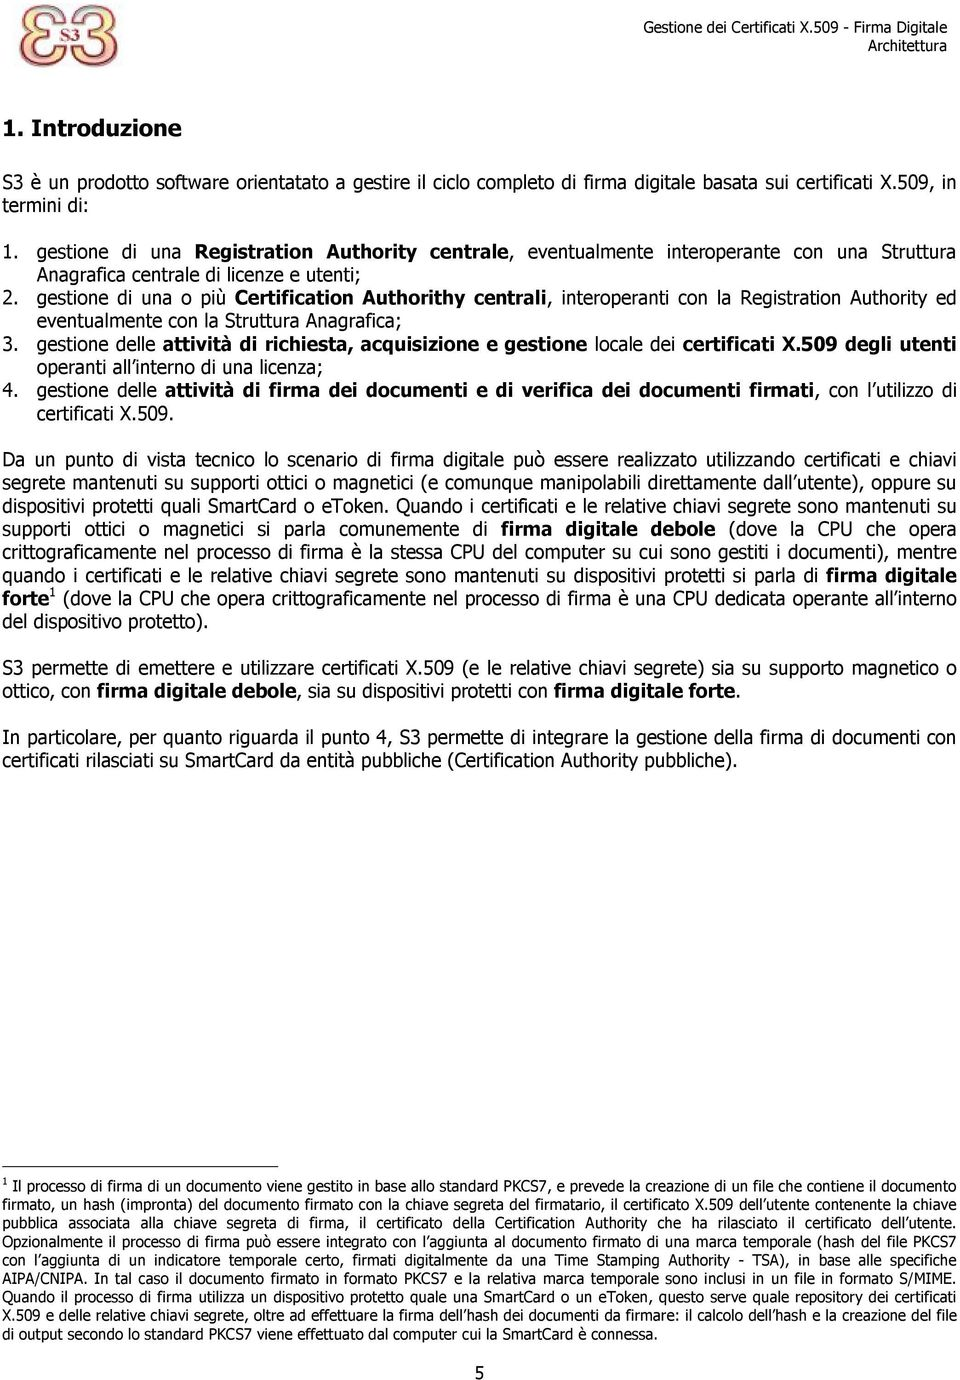 gestione di una o più Certification Authorithy centrali, interoperanti con la Registration Authority ed eventualmente con la Struttura Anagrafica; 3.